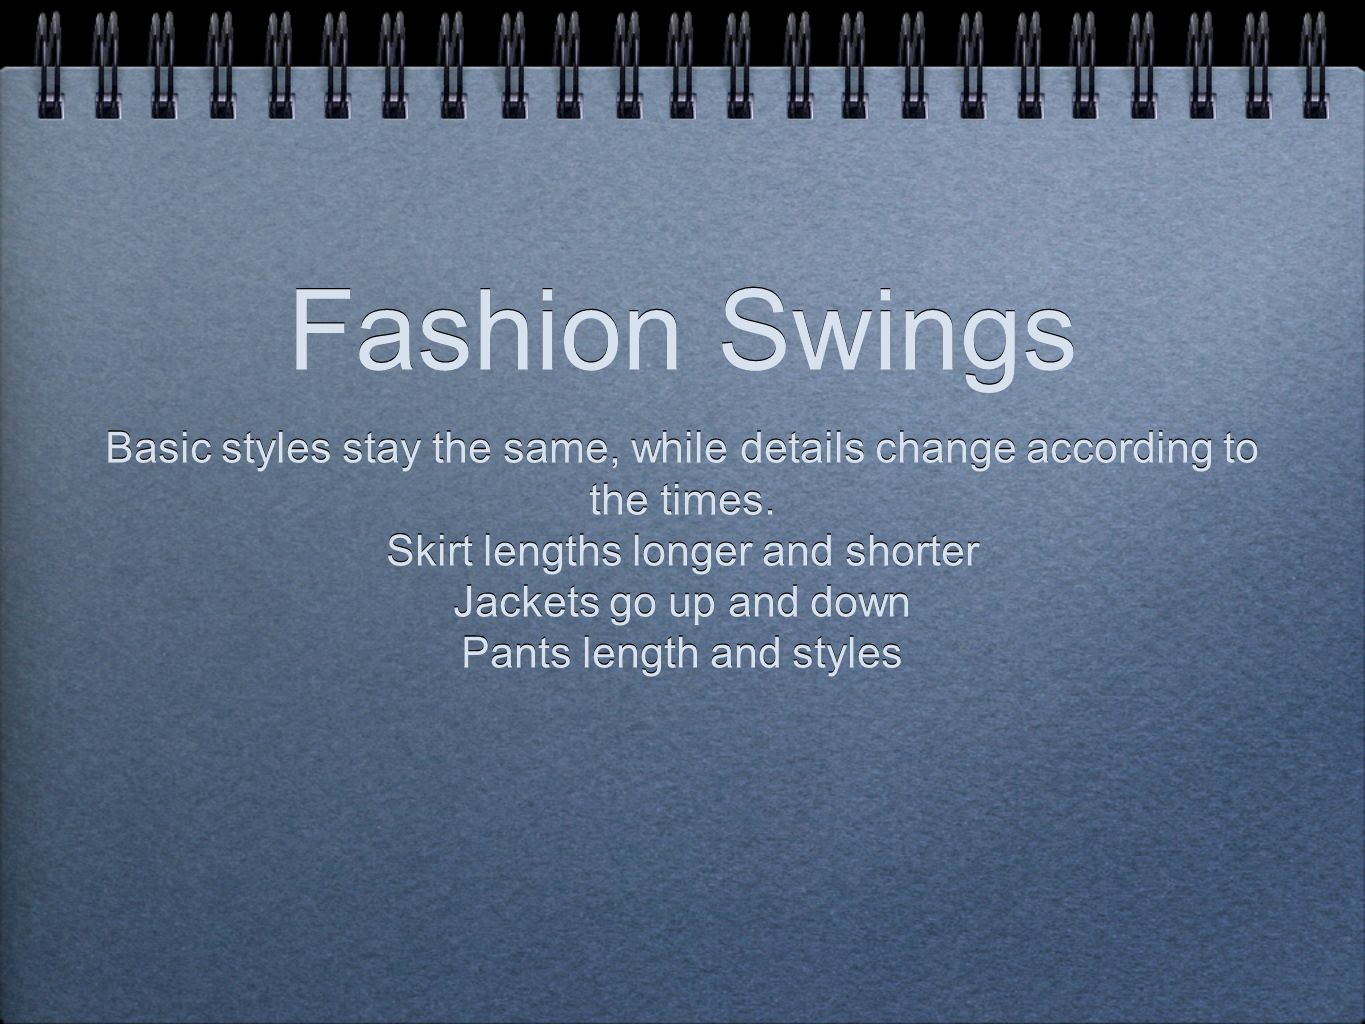 Fashion Swings Basic styles stay the same, while details change according to the times.